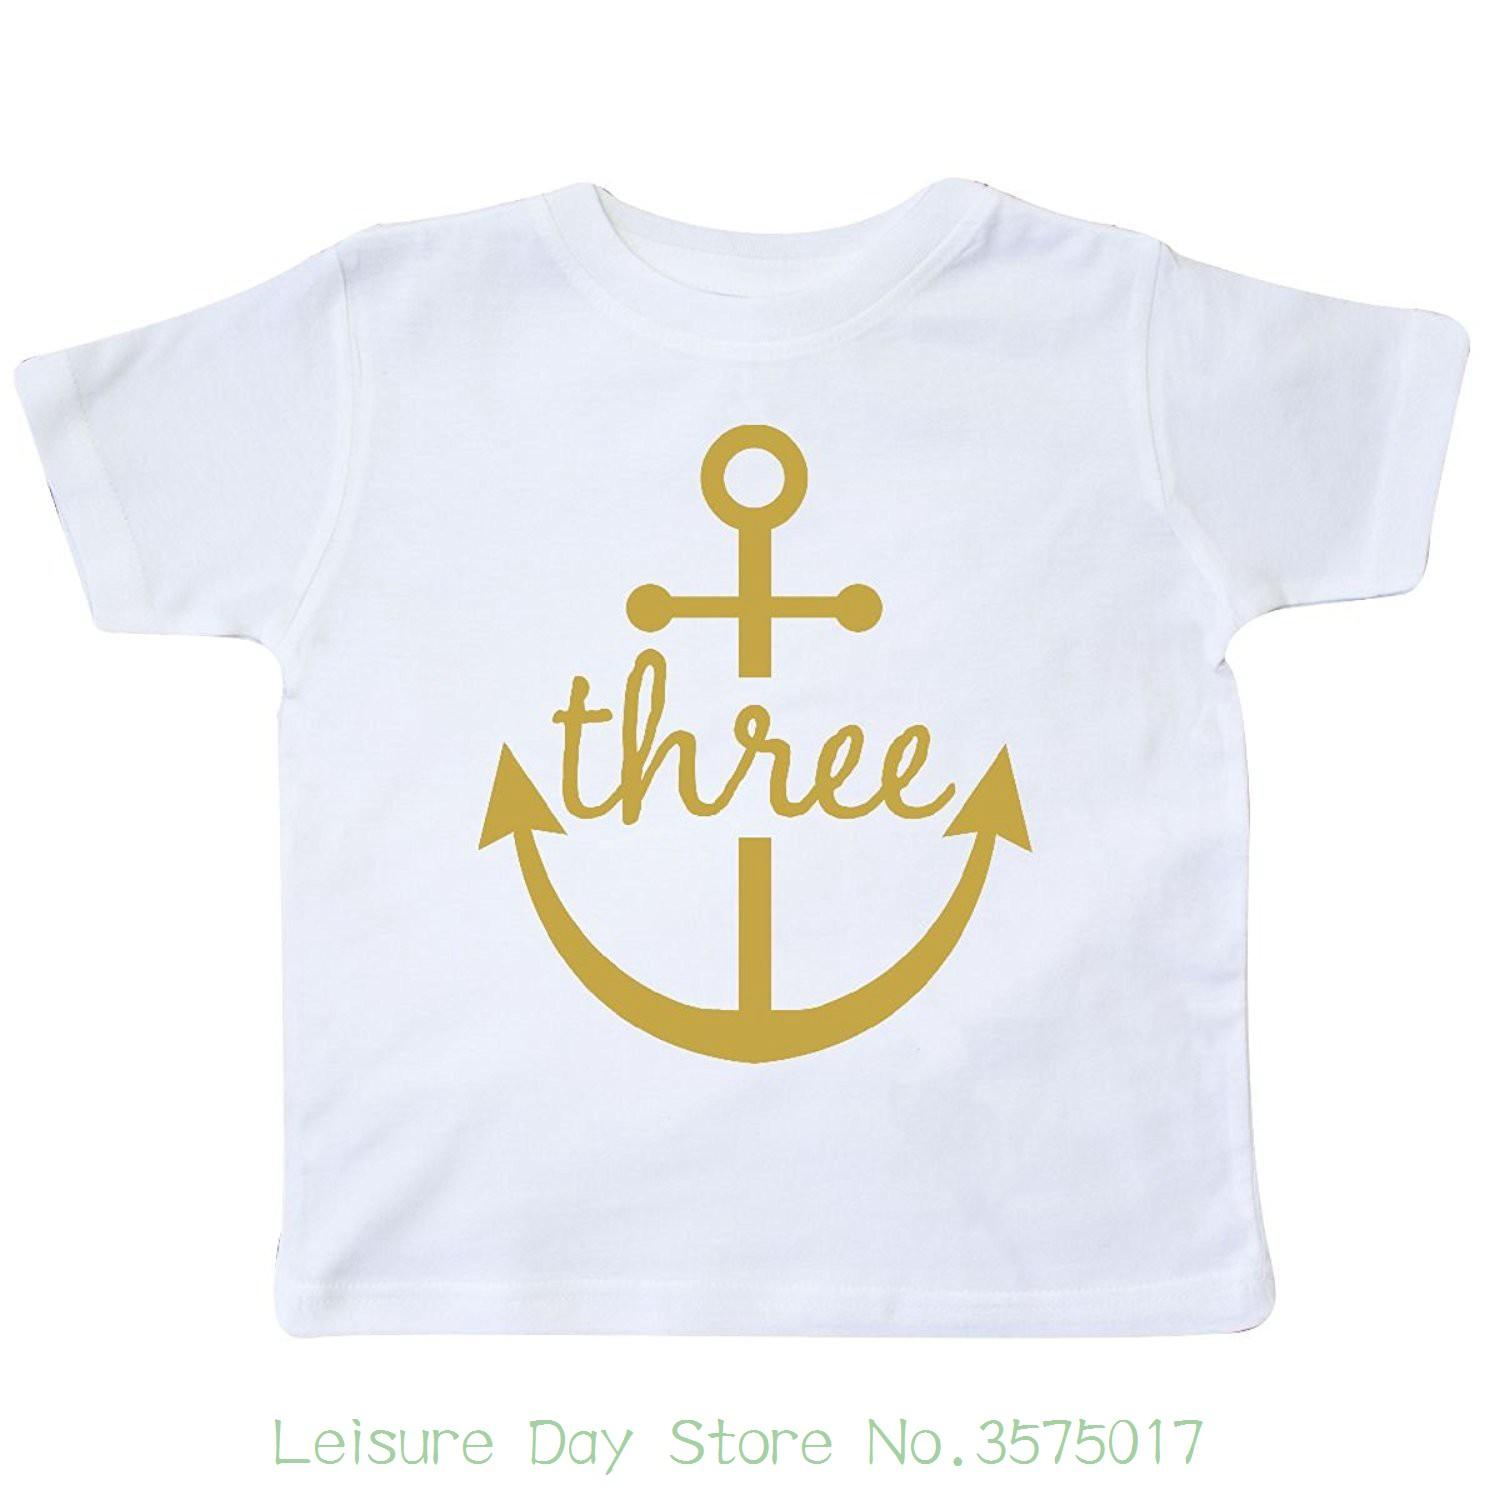 Hot Sale Men T Shirt Fashion 3rd Birthday Photo Outfit 3 Year Old Toddler Deal With It Ts Shirts From Leisuredaystore 242